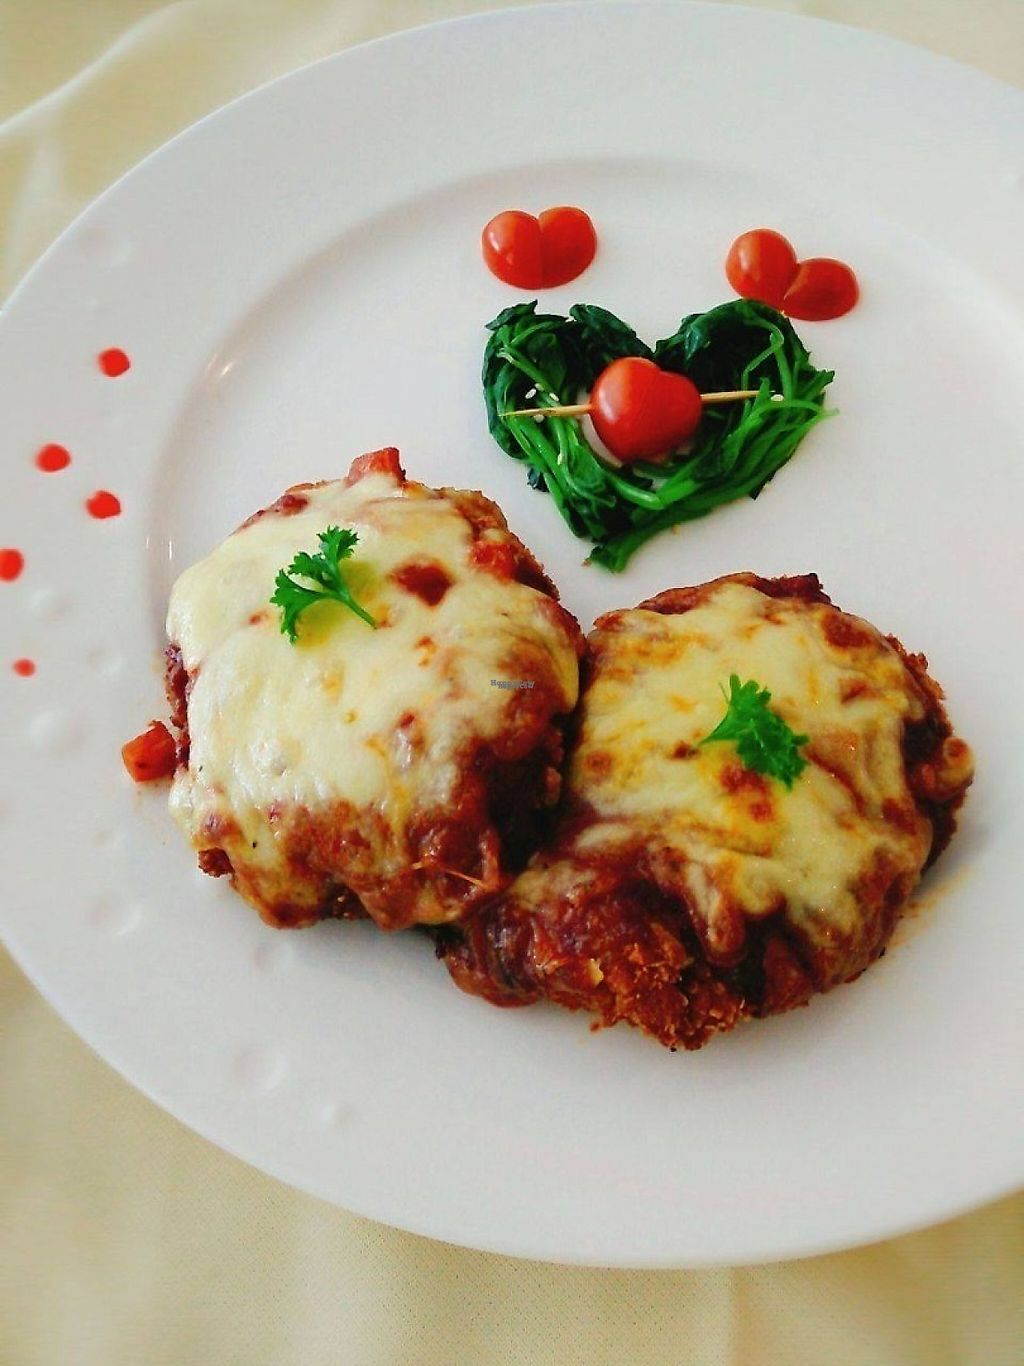 """Photo of Fresh Moment - maybe closed  by <a href=""""/members/profile/happyin"""">happyin</a> <br/>Valentine Special~super lovely~ Baked Mushroom Chop With Parmigiana  <br/> February 10, 2017  - <a href='/contact/abuse/image/69112/224970'>Report</a>"""